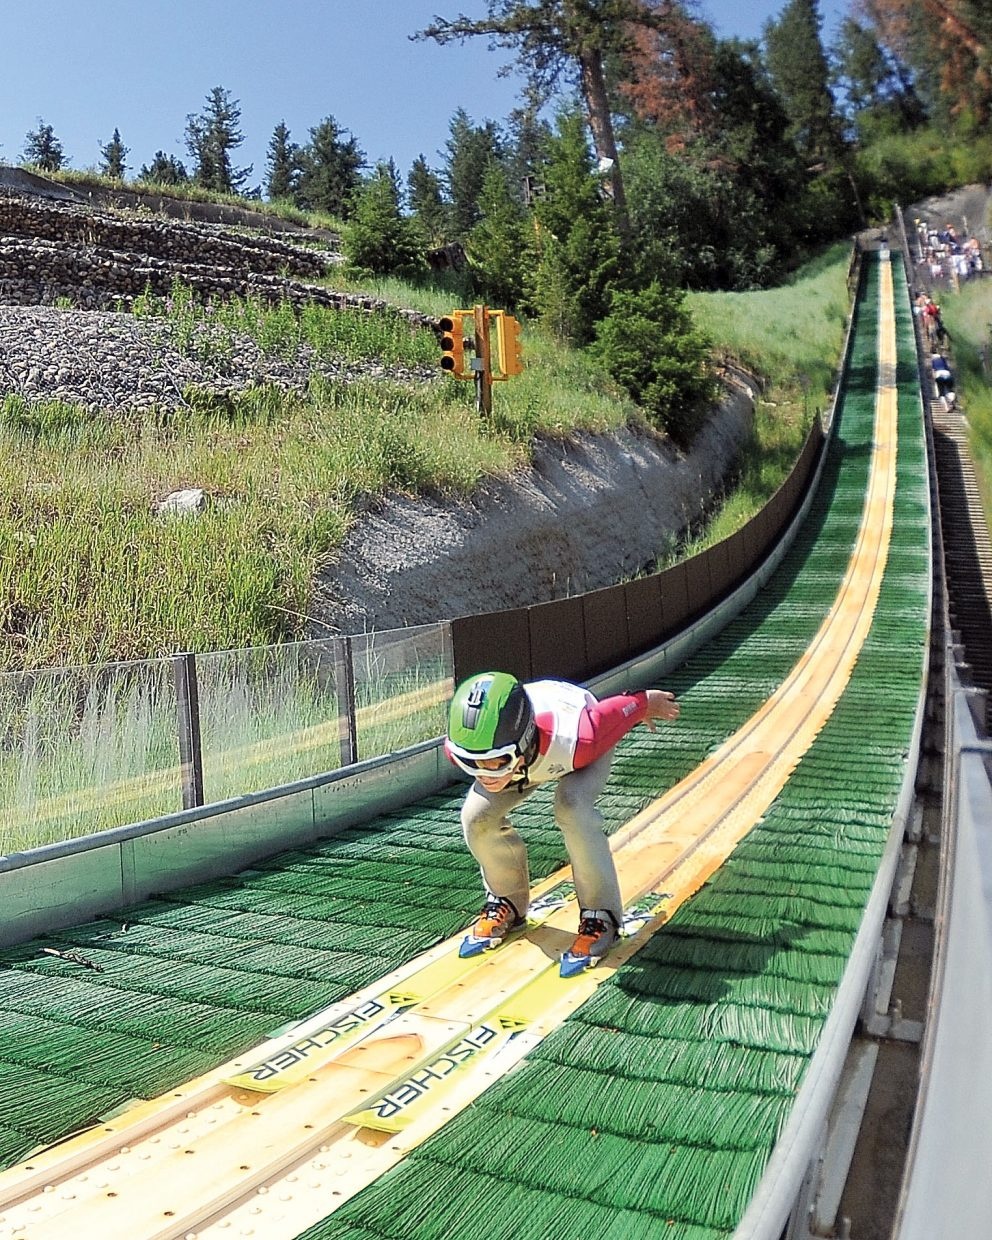 Finn O'Connell speeds down the in-run before taking flight Tuesday morning during the Fourth of July Ski Jumping Extravaganza at Howelsen Hill. Events will continue at 9:30 a.m. Wednesday with the Nordic combined roller-ski event on Lincoln Avenue and an elimination jump at 11 a.m. at Howelsen Hill.